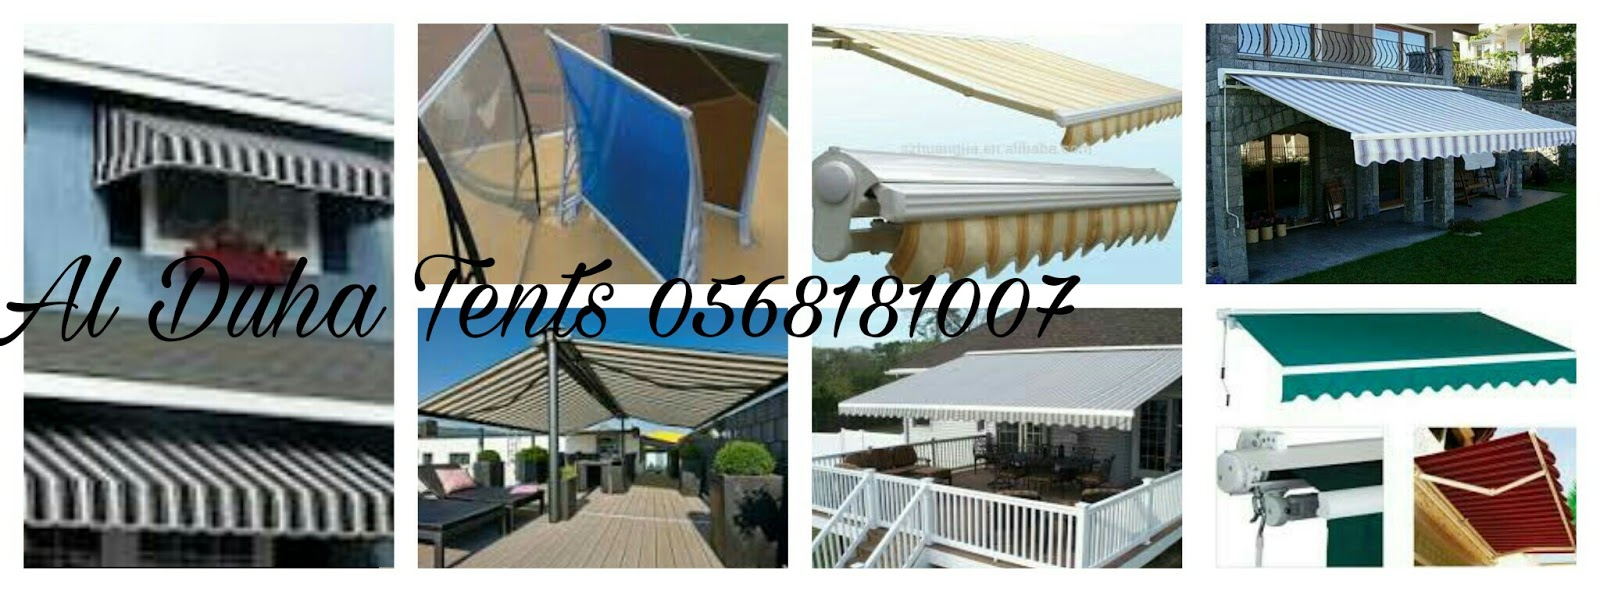 Awning Suppliers in Dubai Sharjah Ajman Waterproof Fabric Awnings